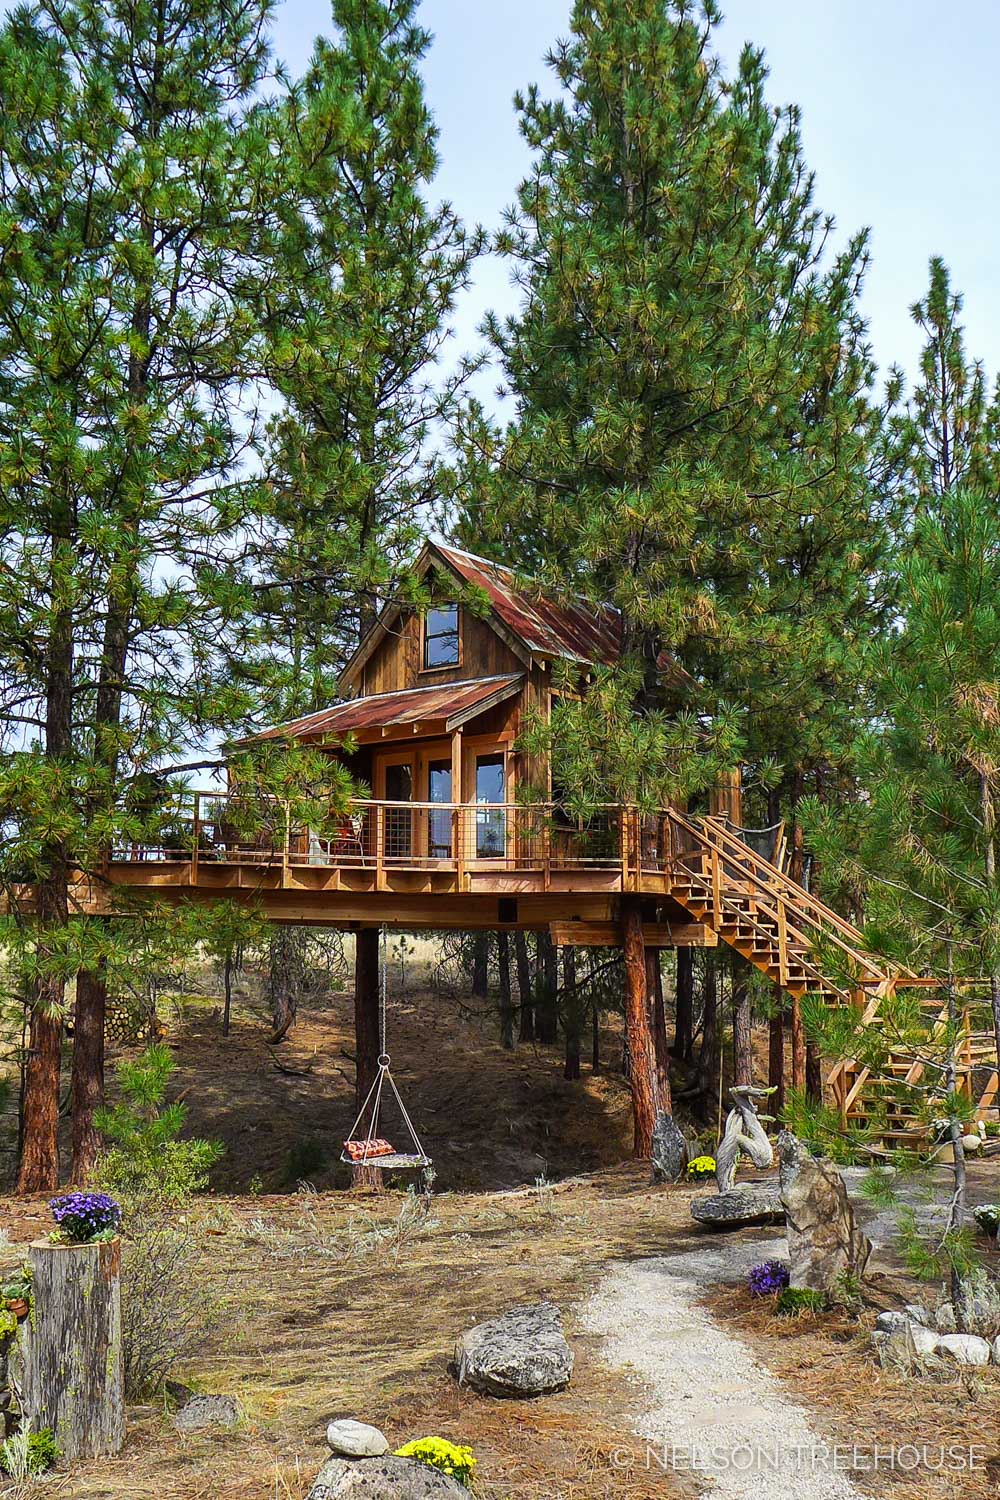 FAR OUT HIDEOUT     CLICK FOR PHOTO TOUR >>     Location:  Eastern Washington  Year Built:  2017  Square Feet:  200  Elevation:  13 ft Fully tree-supported  Seasonality:  All-season